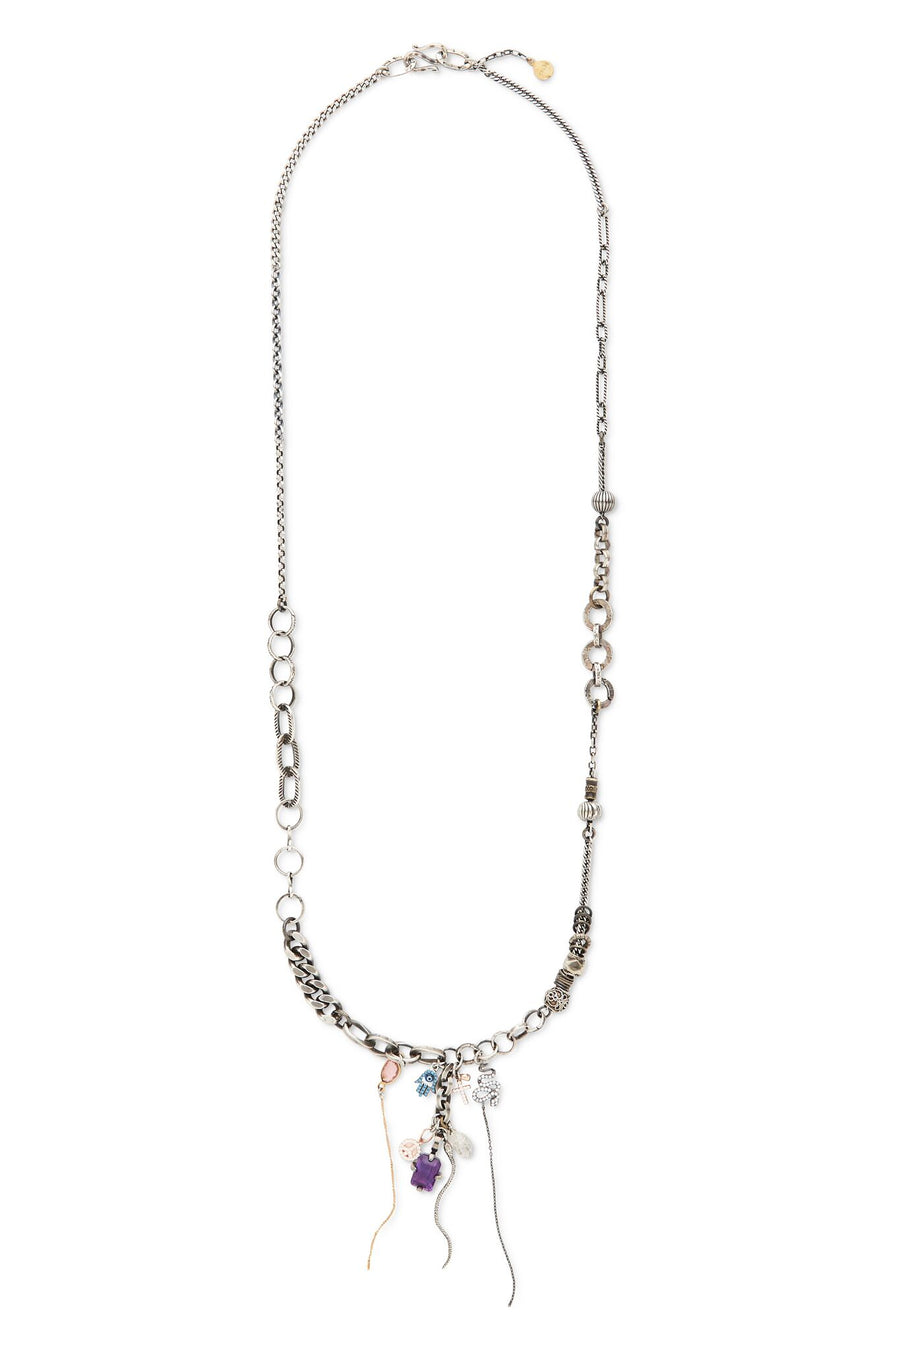 Sterling Silver with Multi Stones, Diamonds, and Chains Linga Necklace